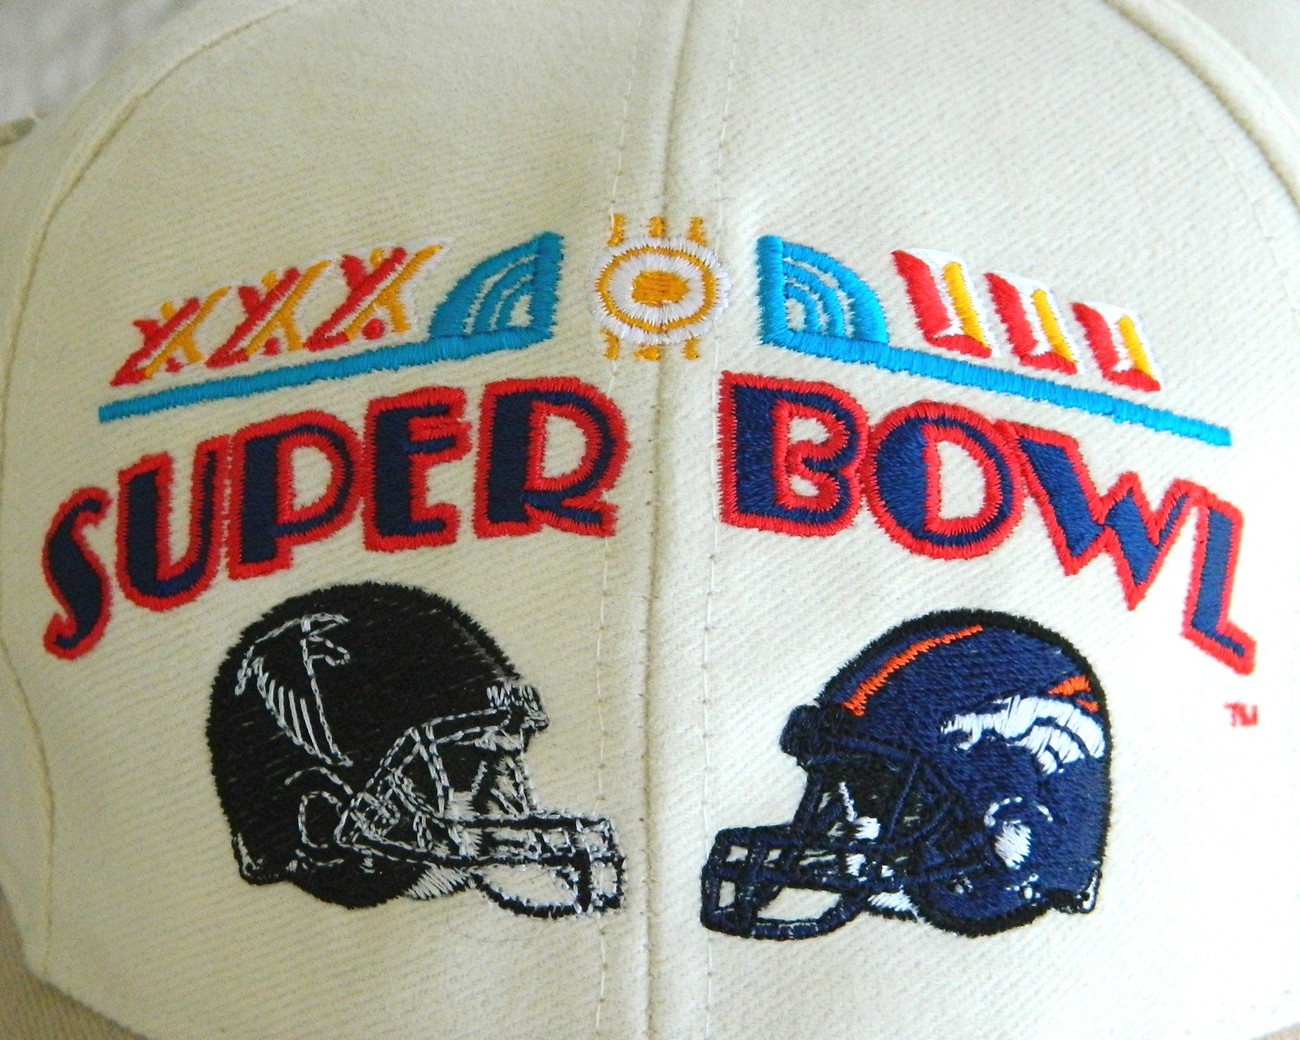 Football_helmets_close_up